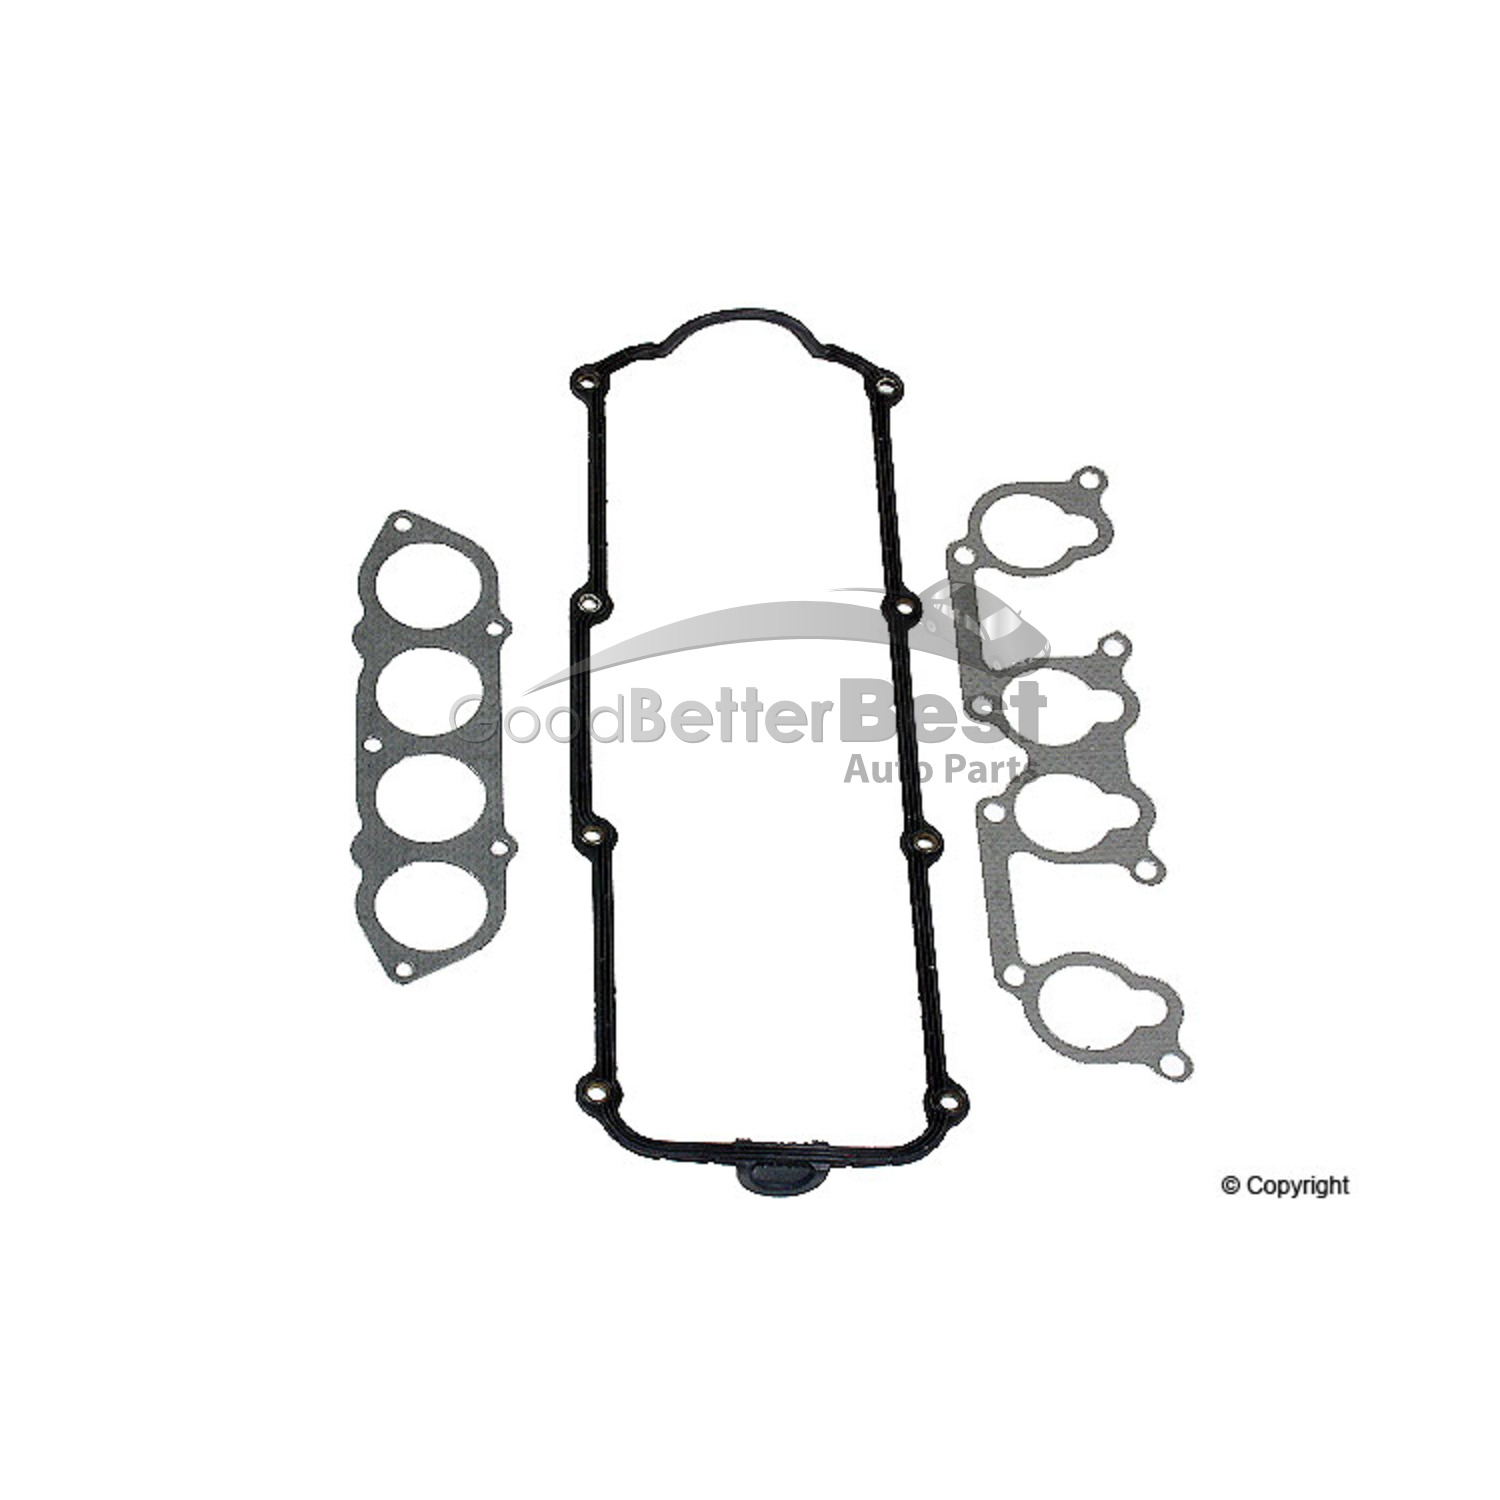 hight resolution of details about new crp engine valve cover gasket set 06a198025 volkswagen vw beetle golf jetta